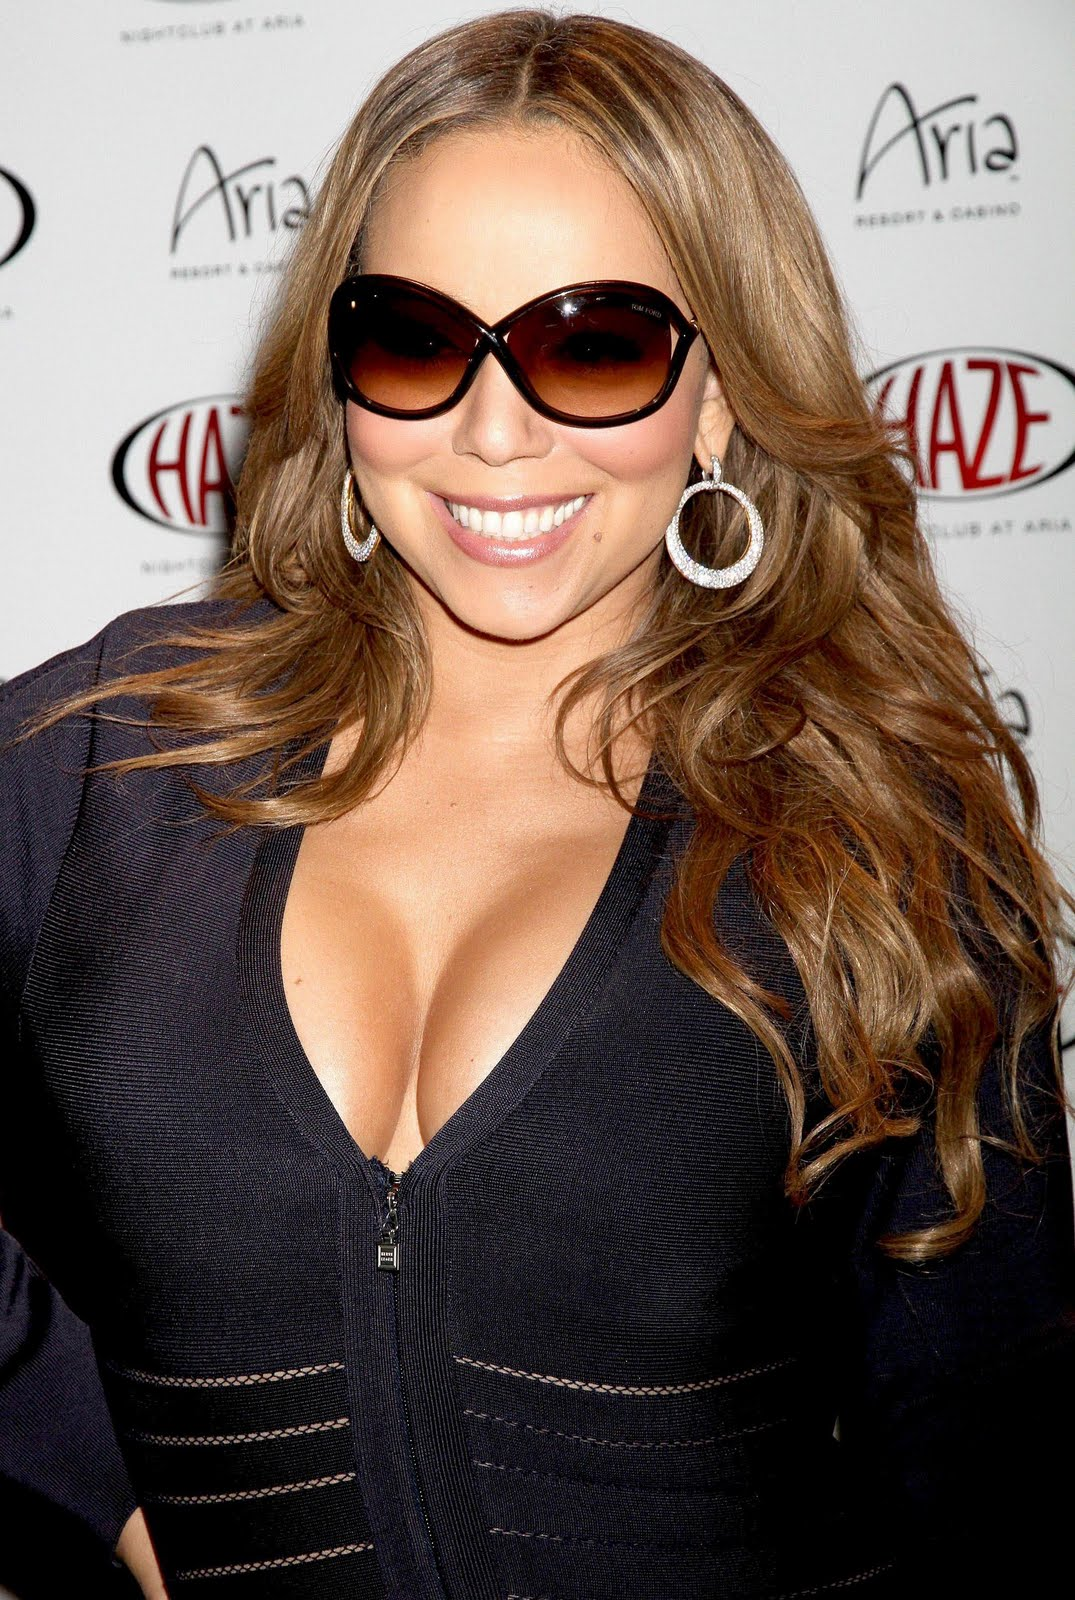 Believe mariah carey whitney houston lyrics